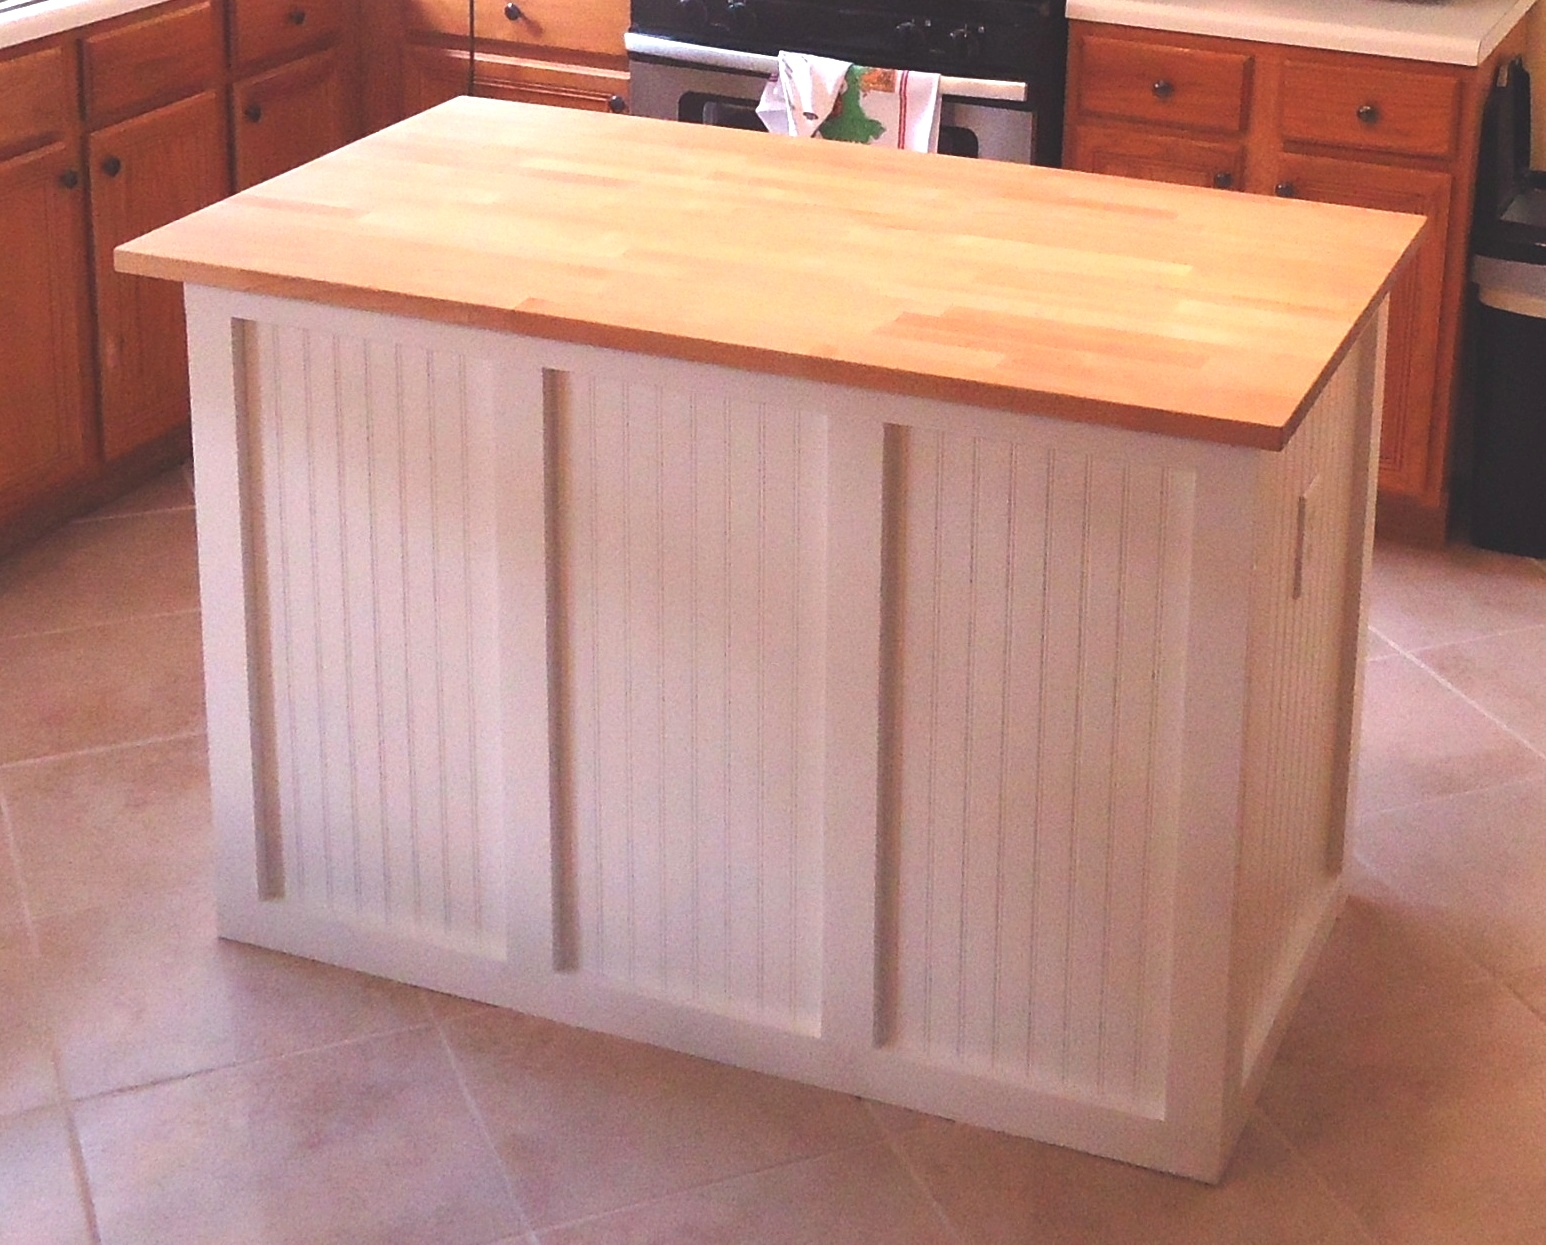 Picture middot quality kitchen unfinished cabinet second sun co